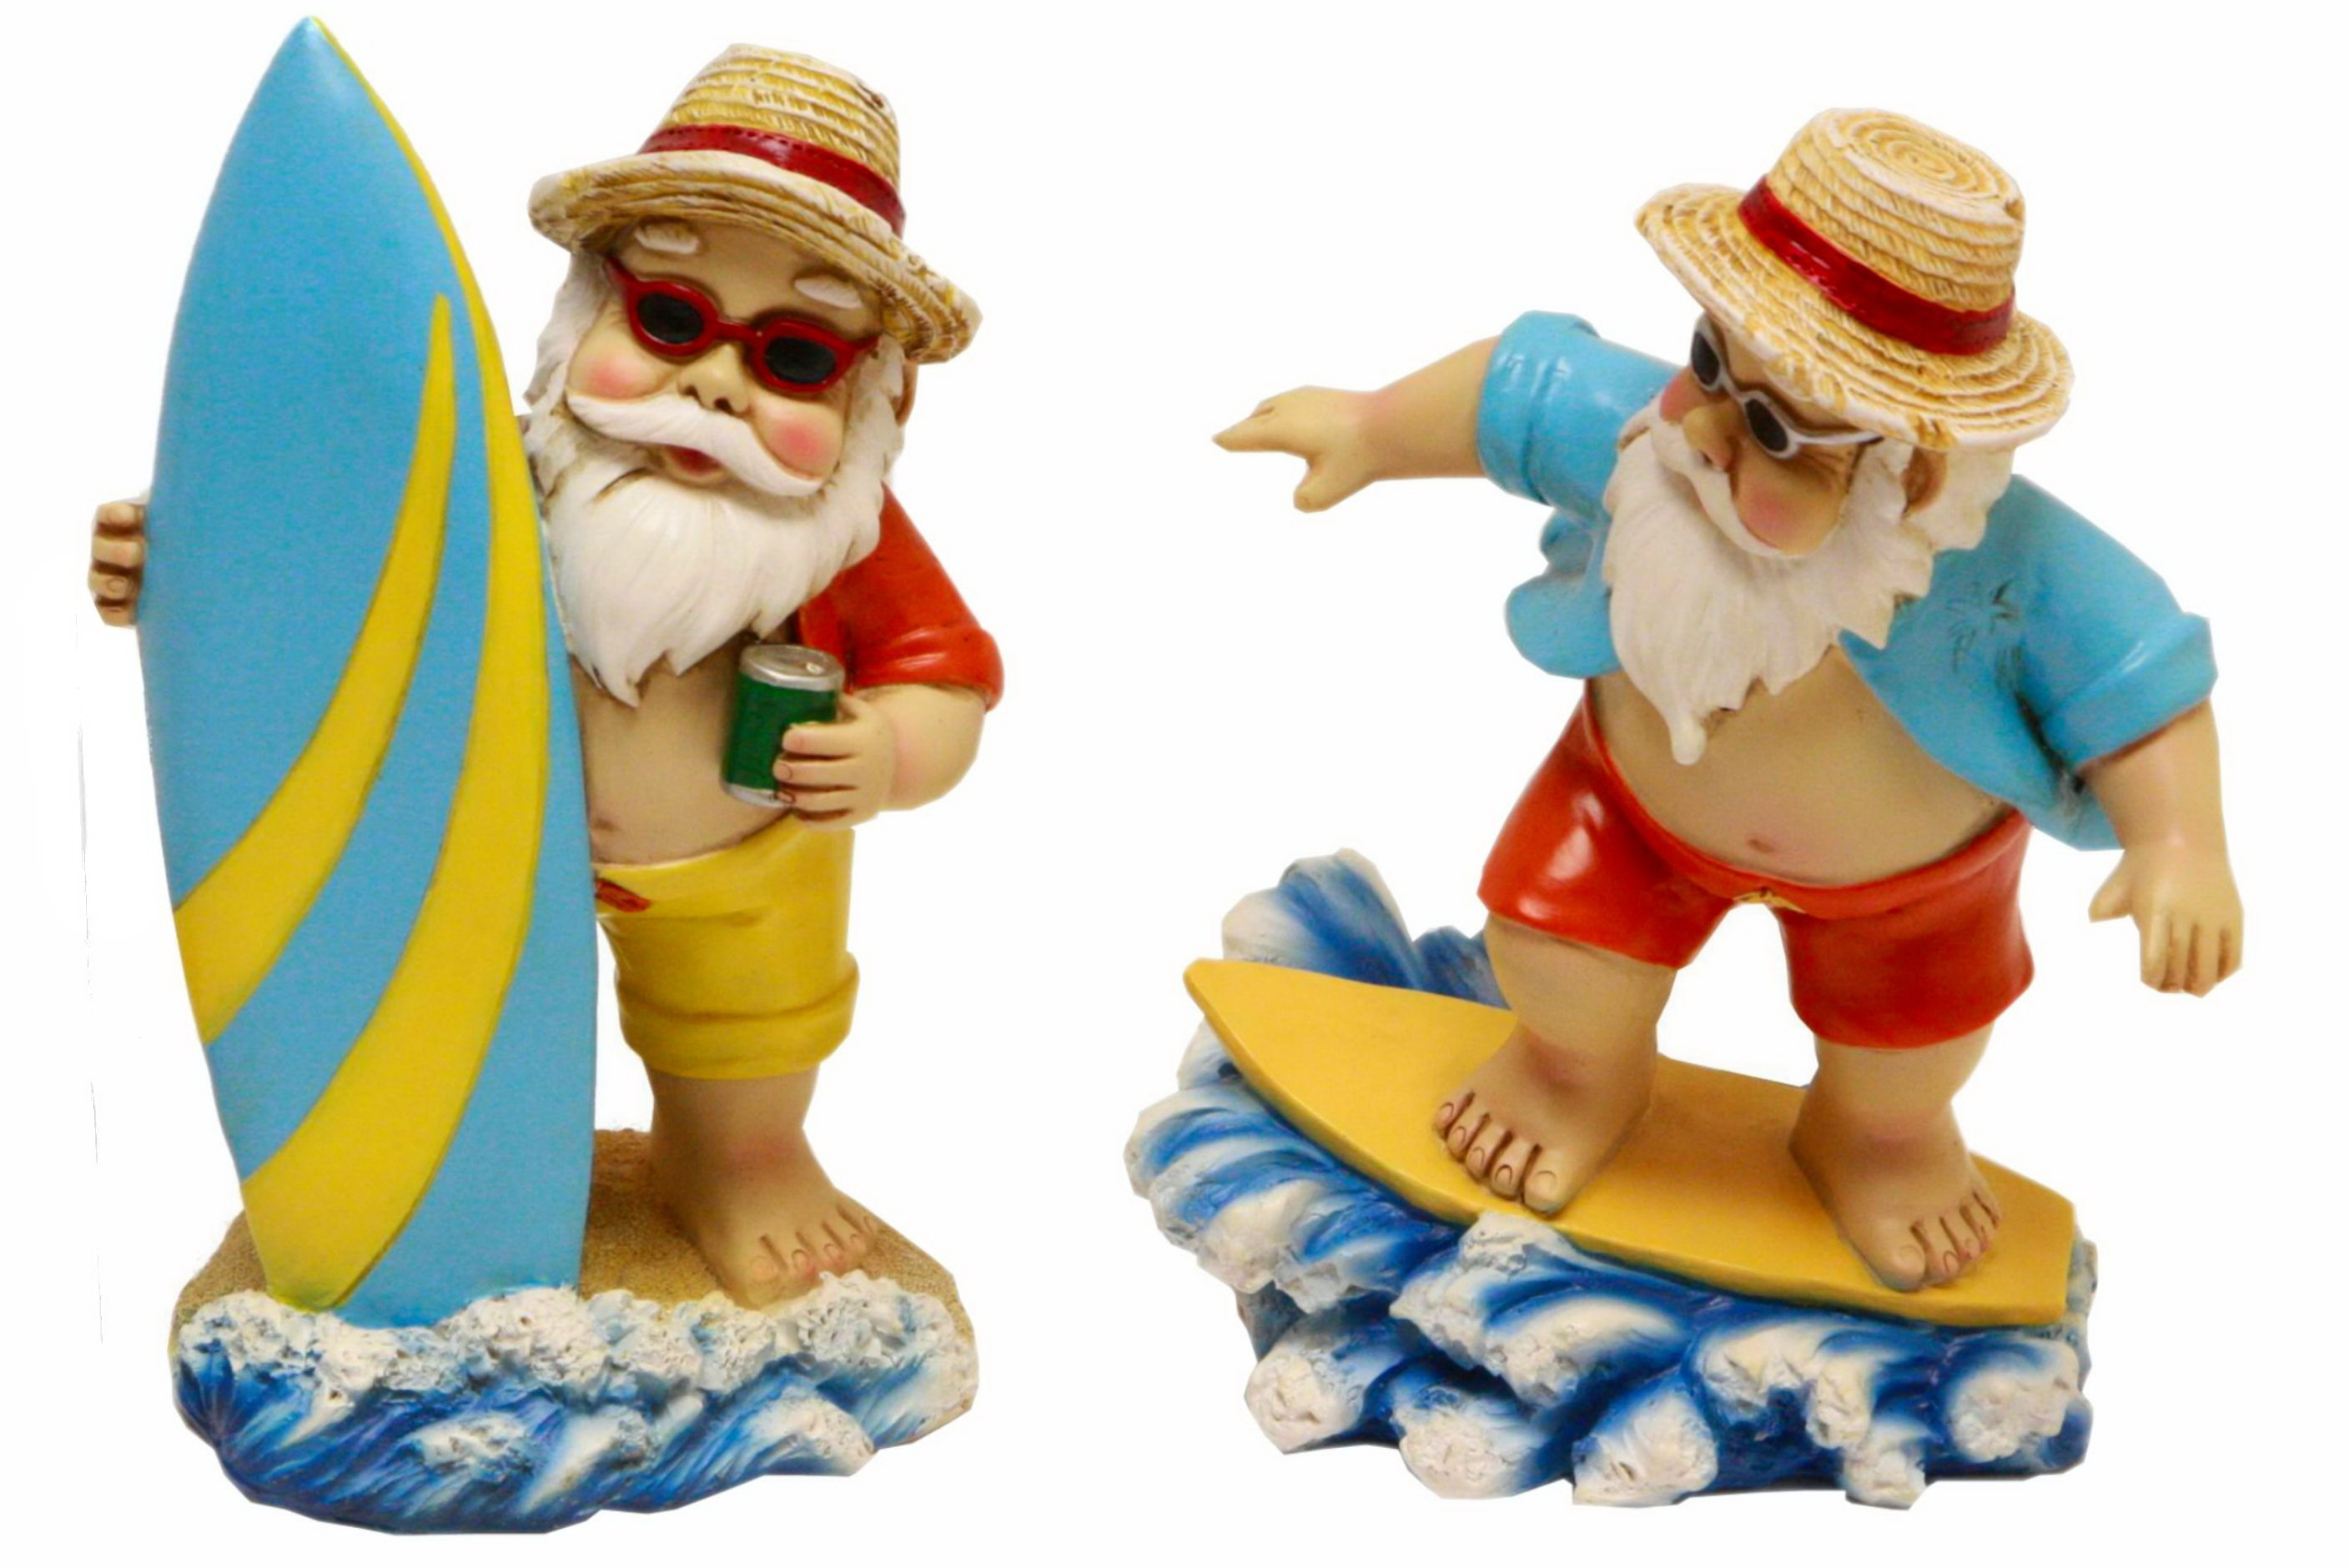 20cm Polyresin Surfing Gnome 2 Assorted Designs